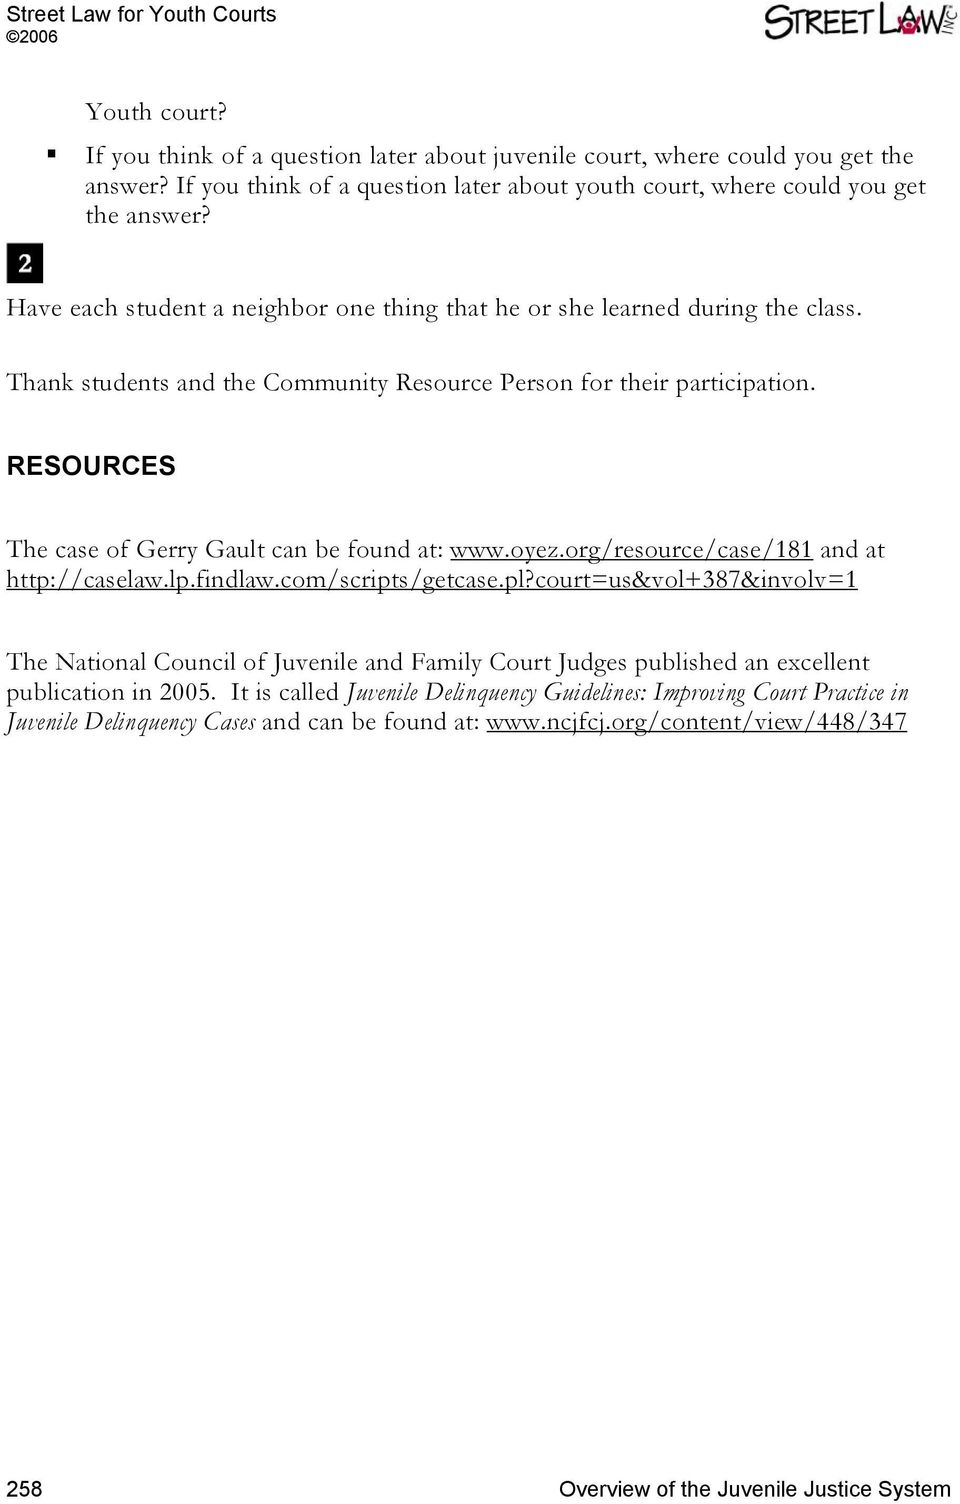 RESOURCES The case of Gerry Gault can be found at: www.oyez.org/resource/case/181 and at http://caselaw.lp.findlaw.com/scripts/getcase.pl?